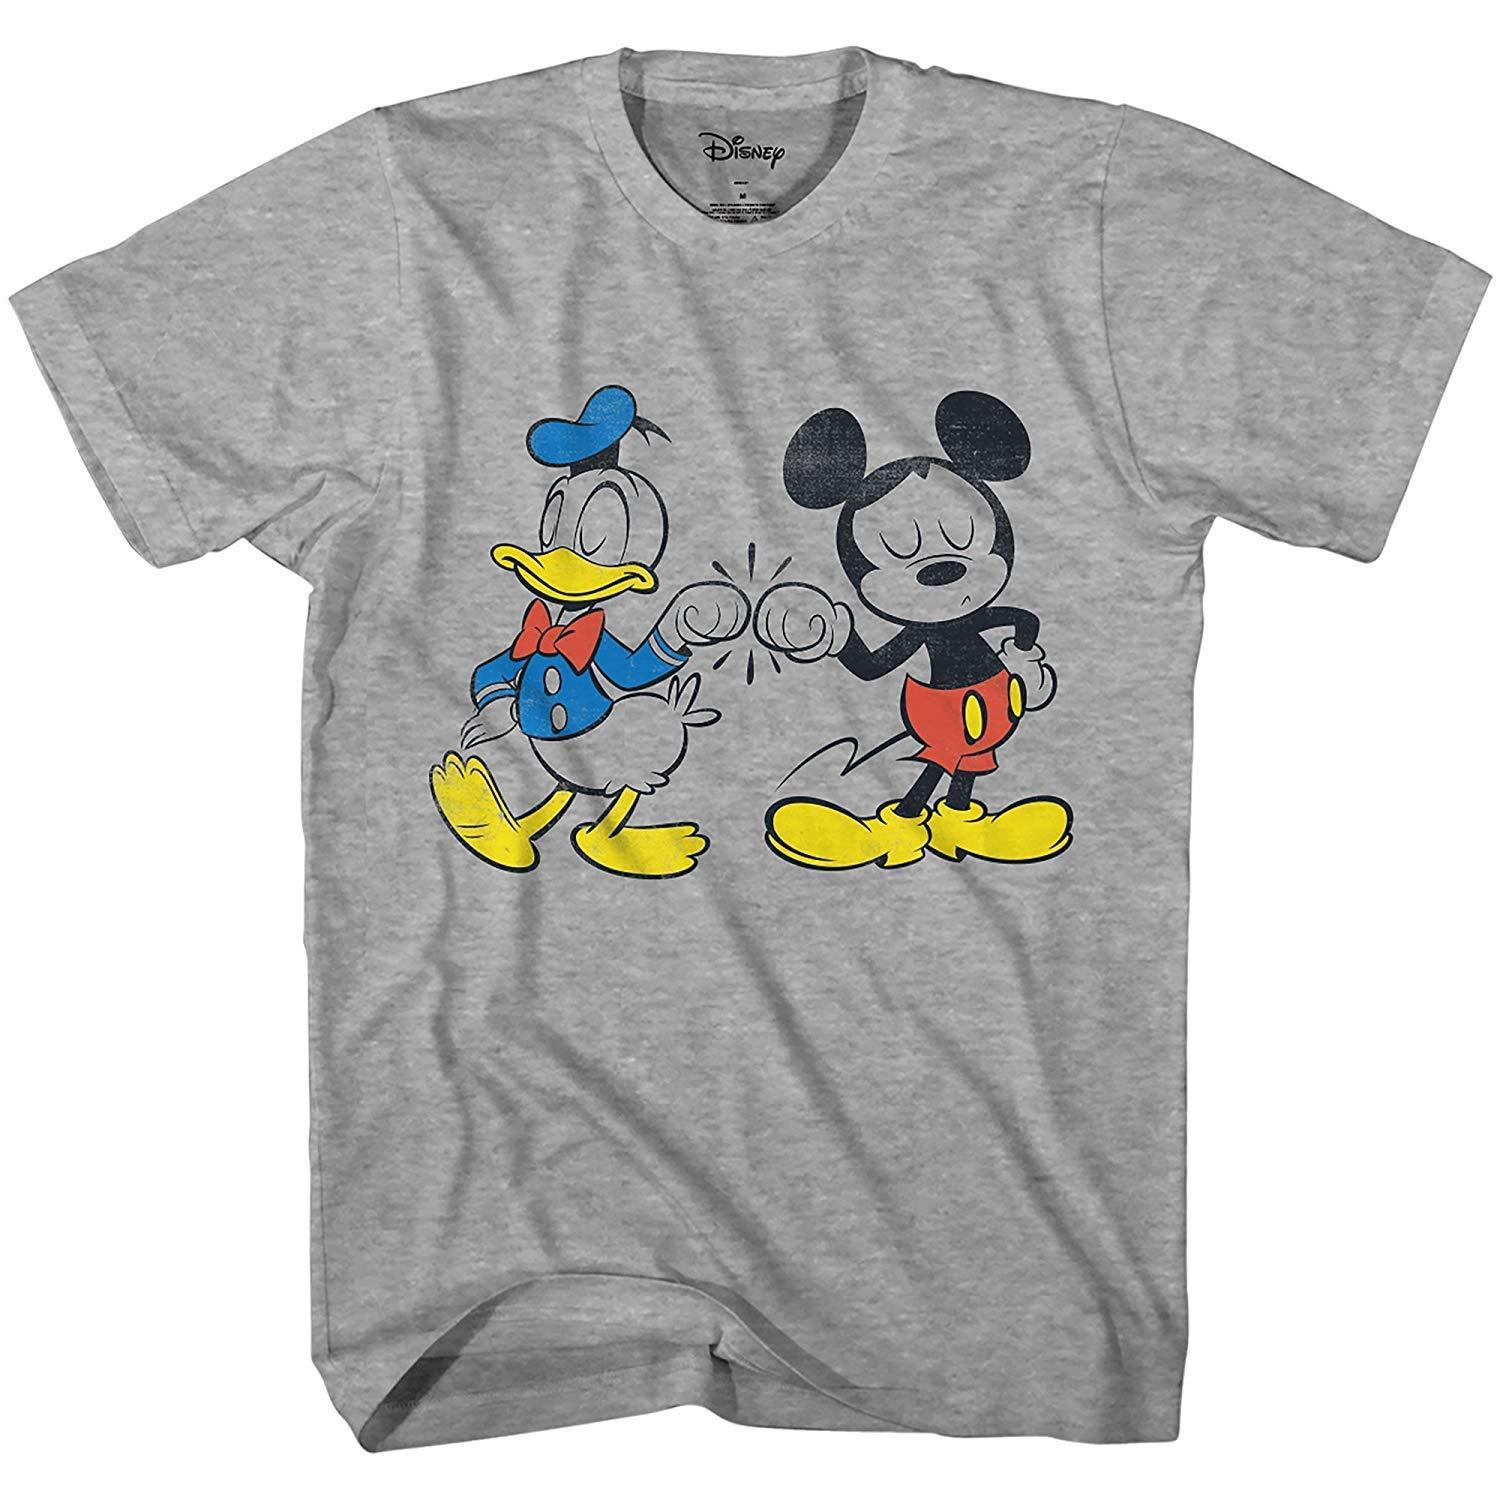 Toddler Kid Tee Youth T-Shirt Walt Disney Donald Duck Classic Cartoon Disneyland